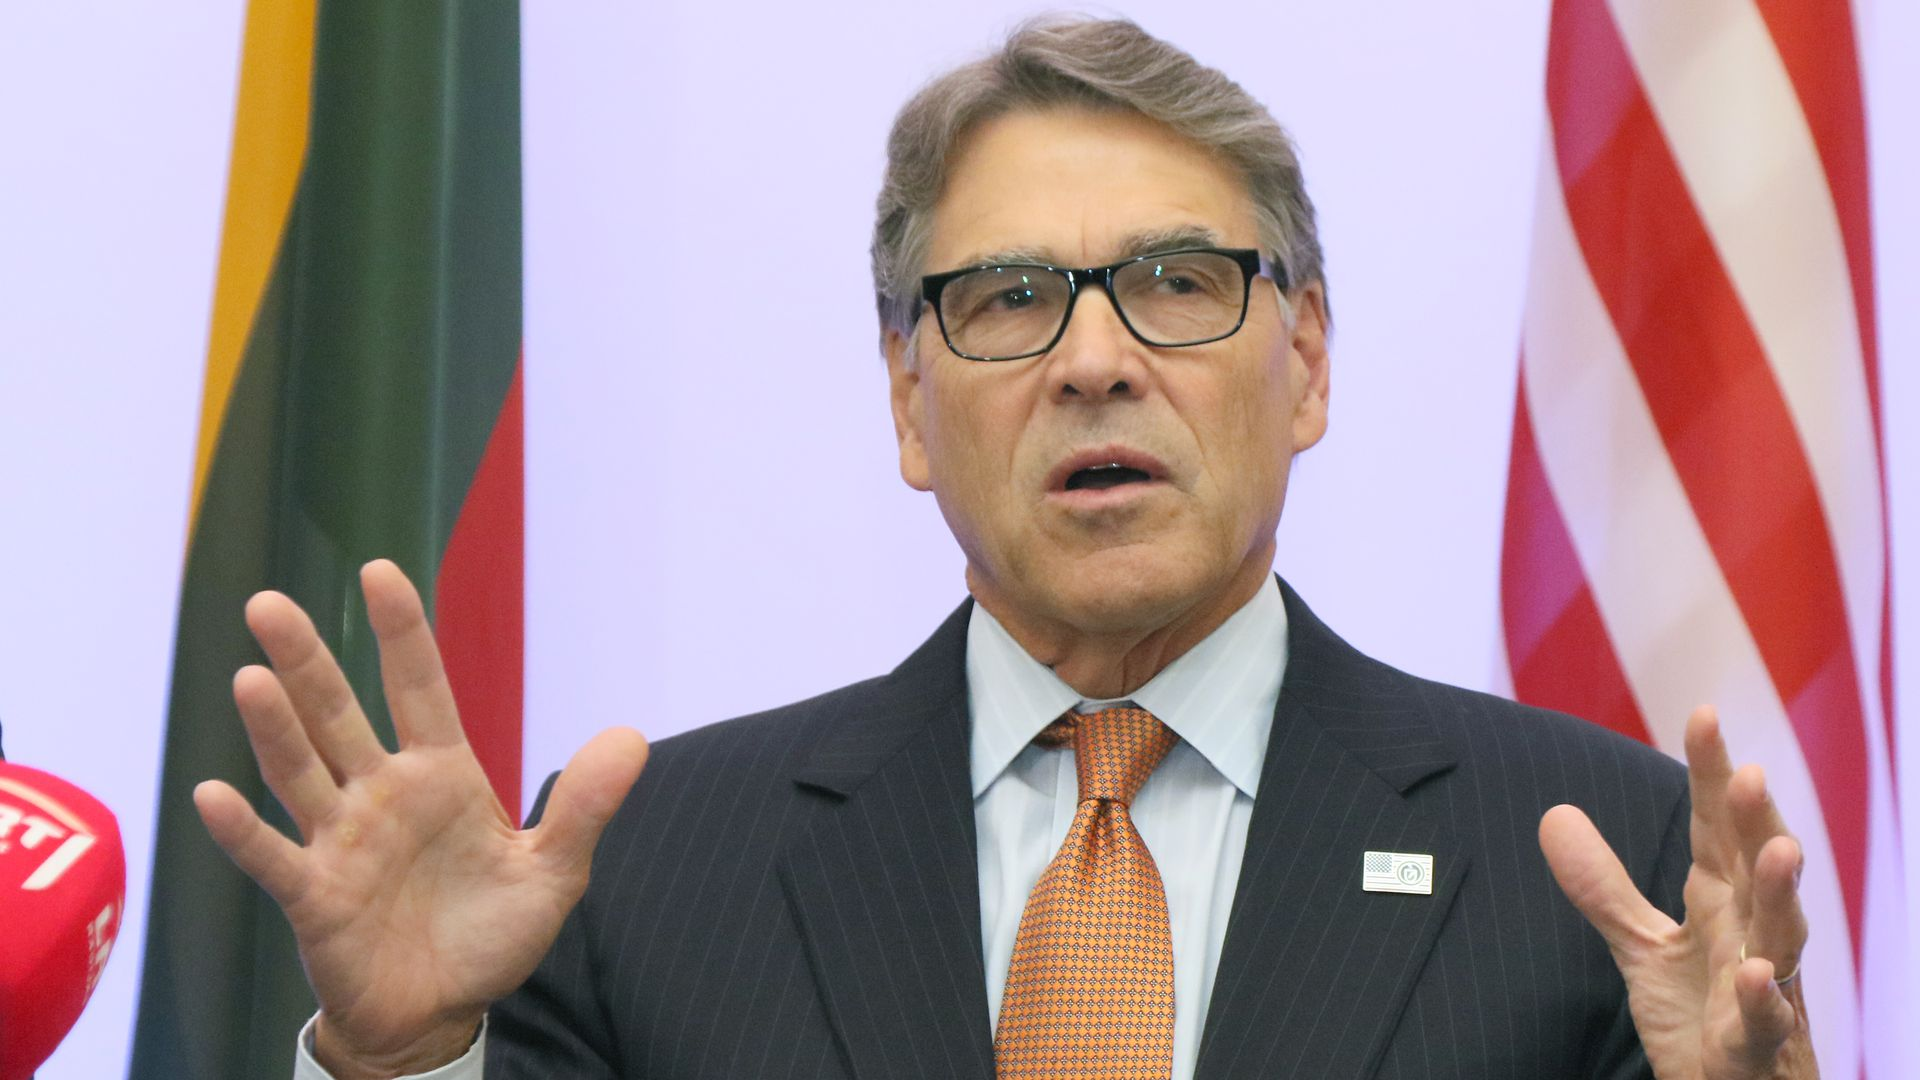 Secretary of Energy Rick Perry delivers a statementduring a meeting in Vilnius, Lithuania